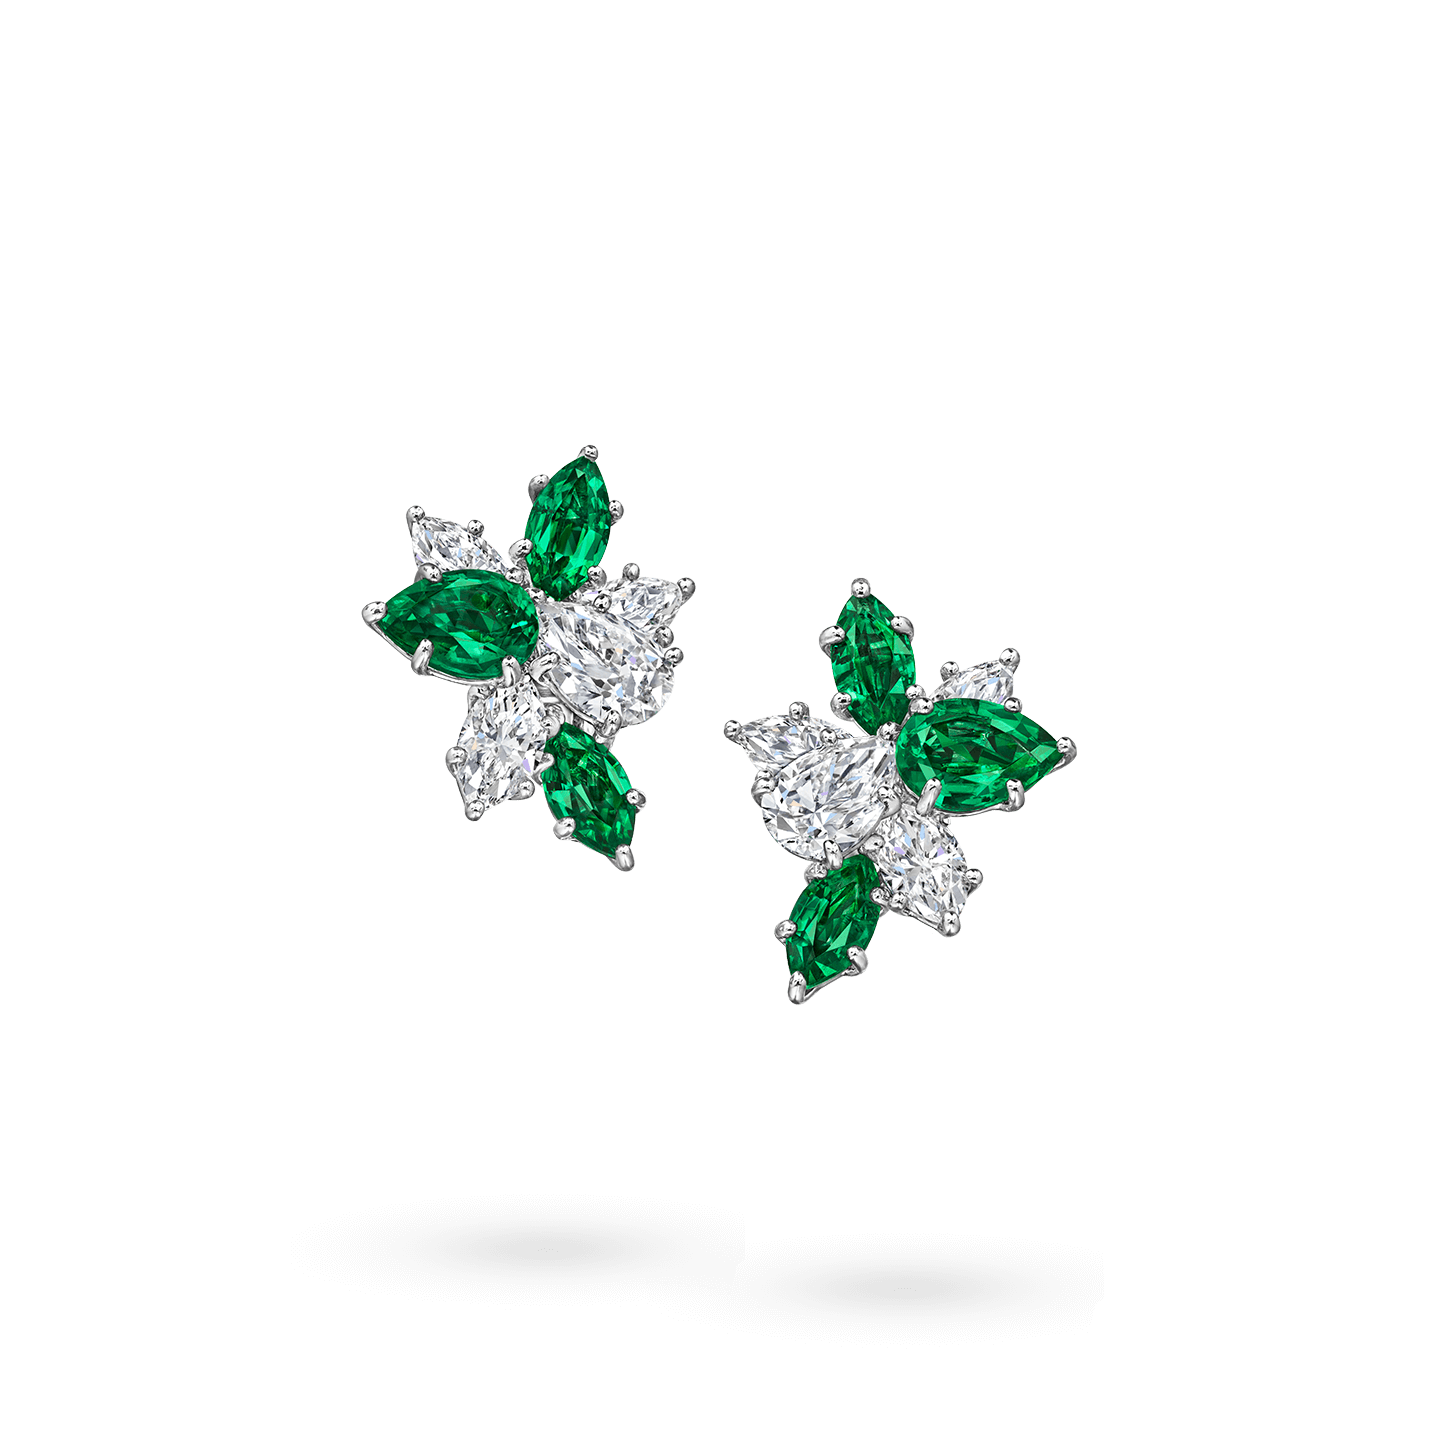 Winston Cluster Emerald and Diamond Earrings, Product Image 1